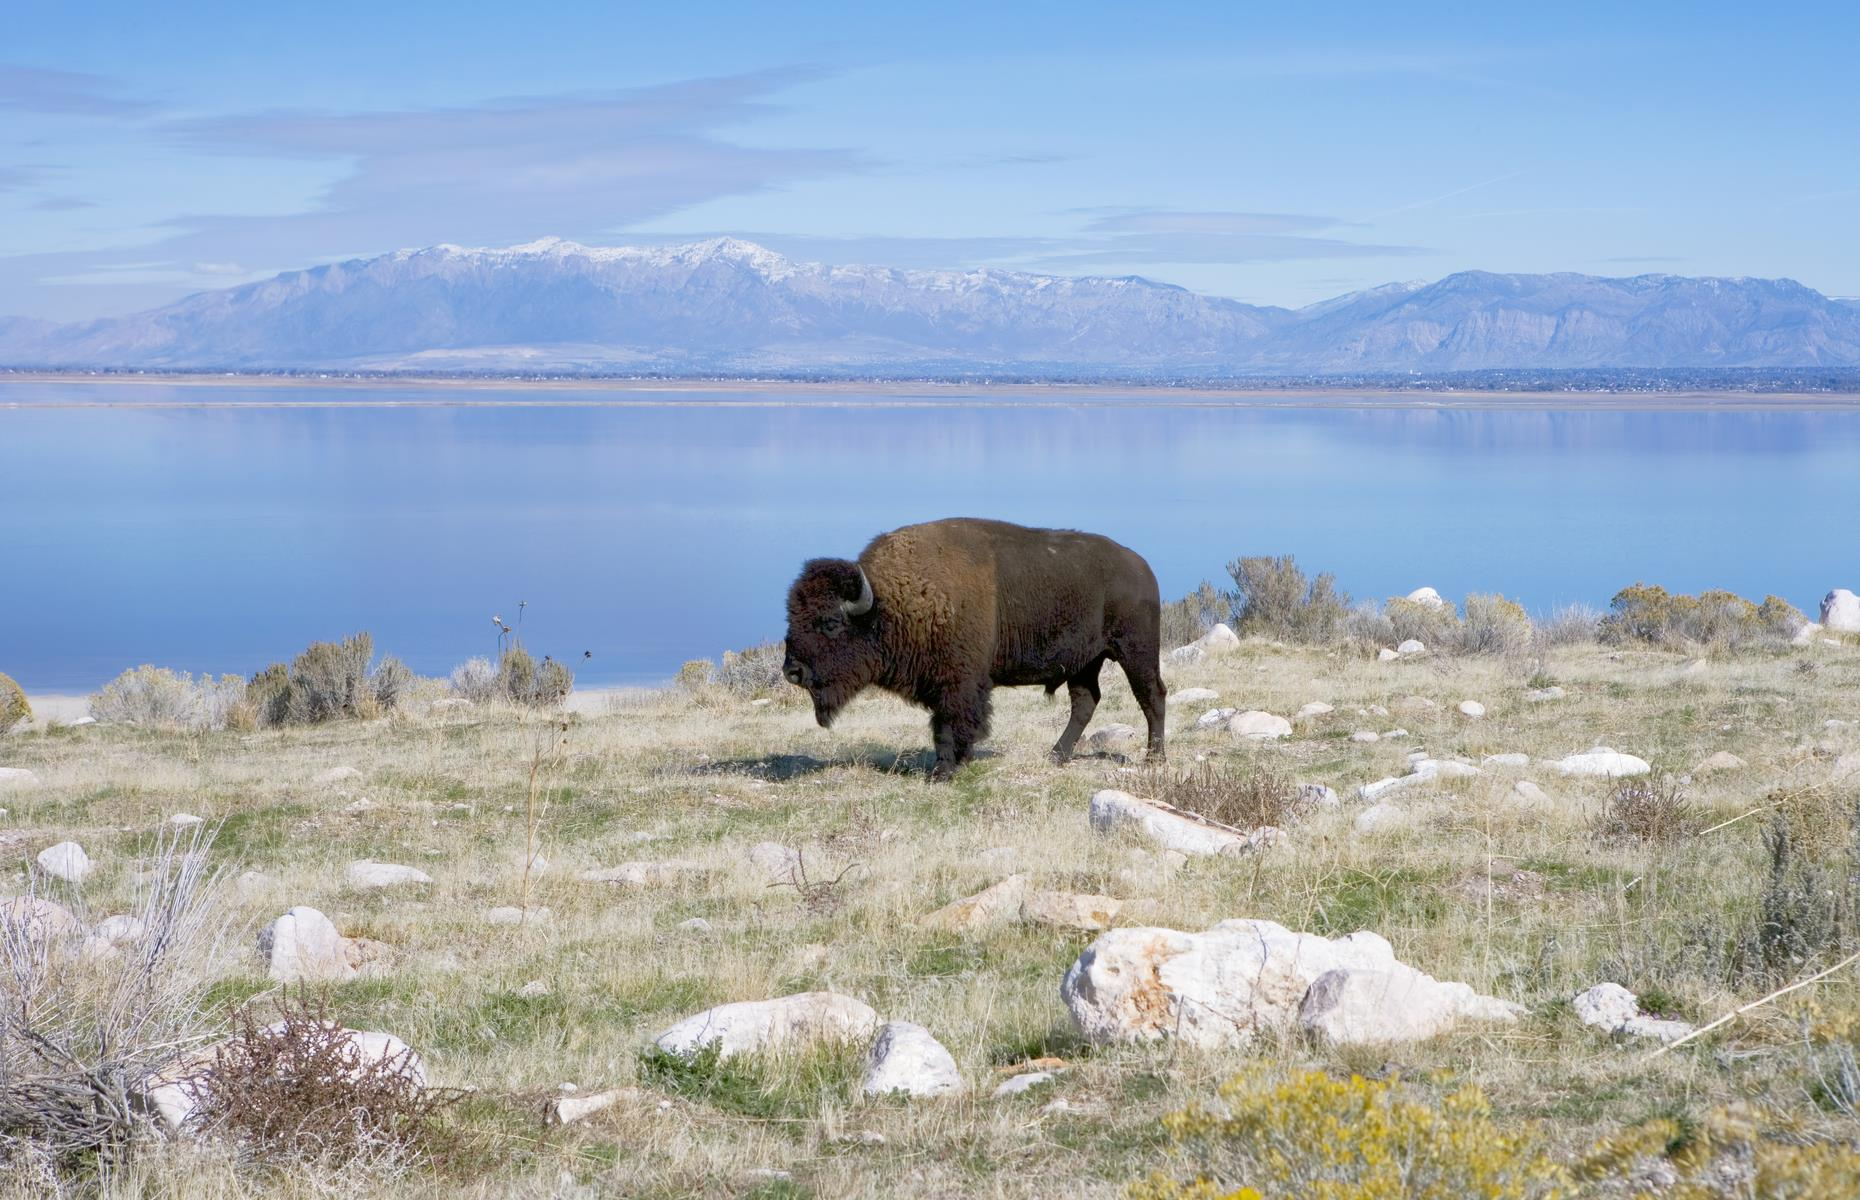 Slide 89 of 101: Picturesque detours include Antelope Island with its roaming bison and stunning views. Then back on the road, on the approach to Wendover, the landscape is lunar, with more stark salt pans and lakes. The city itself sits right on the border with Nevada and is a good base for the Danger and Jukebox Caves State Park Heritage Area, an area of rich archaeological history. Cave tours here are currently suspended, but check the website for updates.